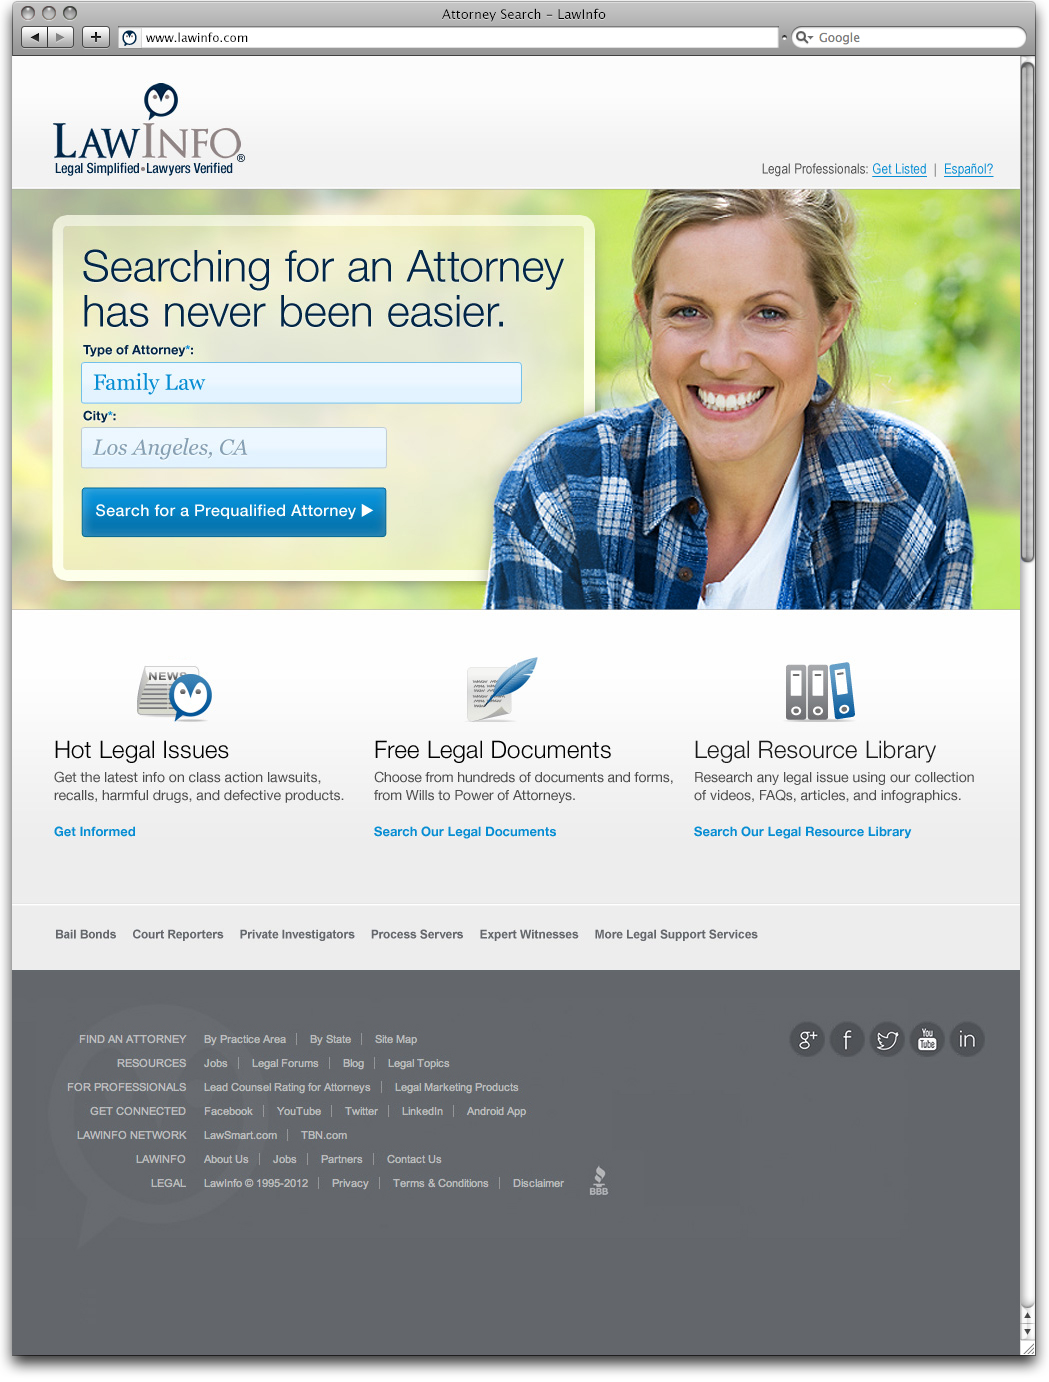 Law Info Landing Page